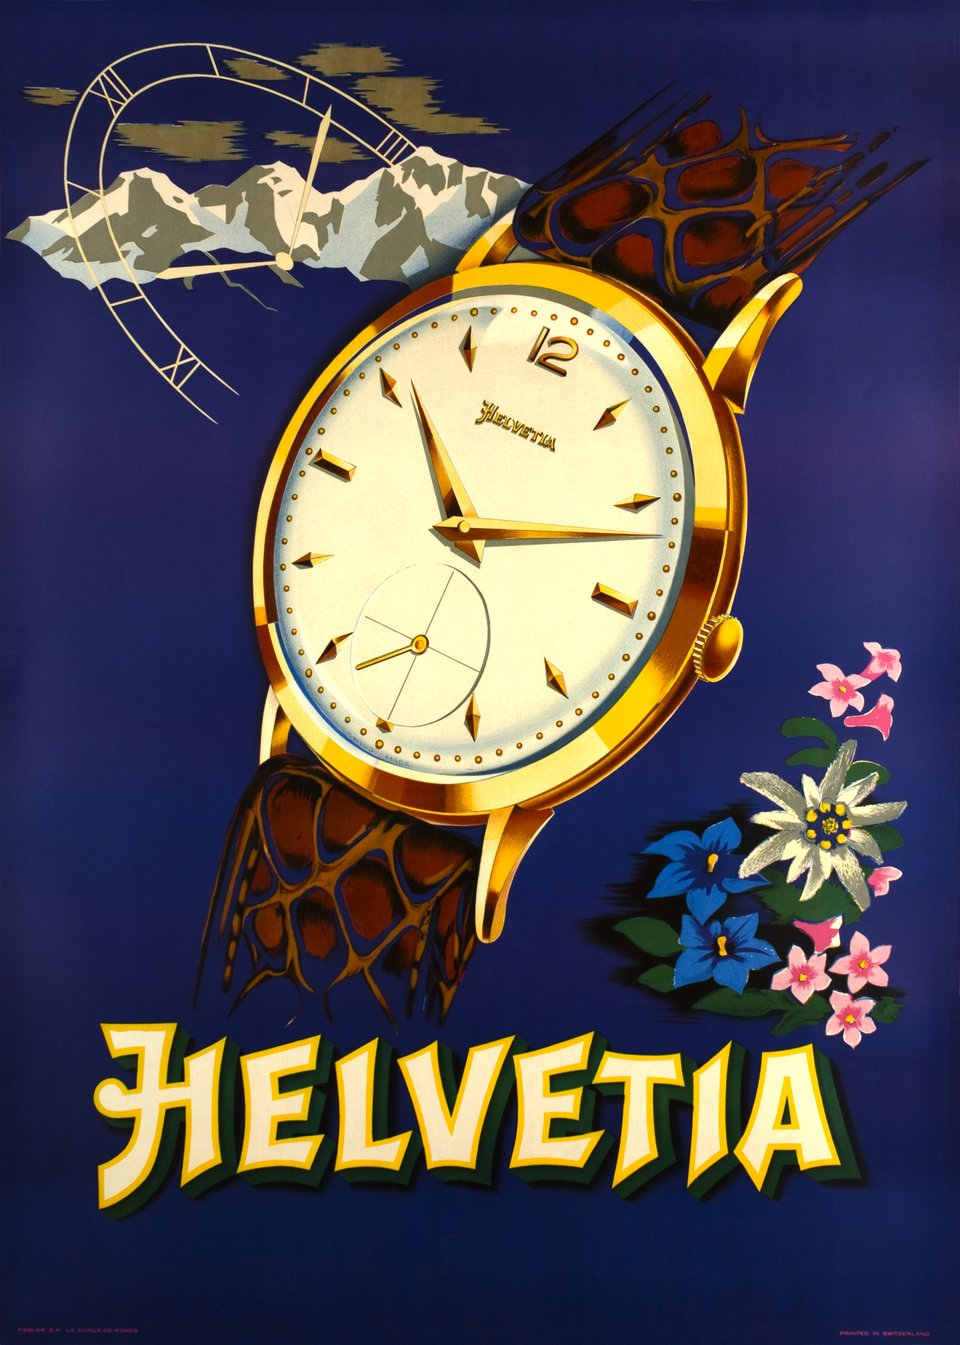 Helvetia watches – Vintage poster – ANONYME – 1940